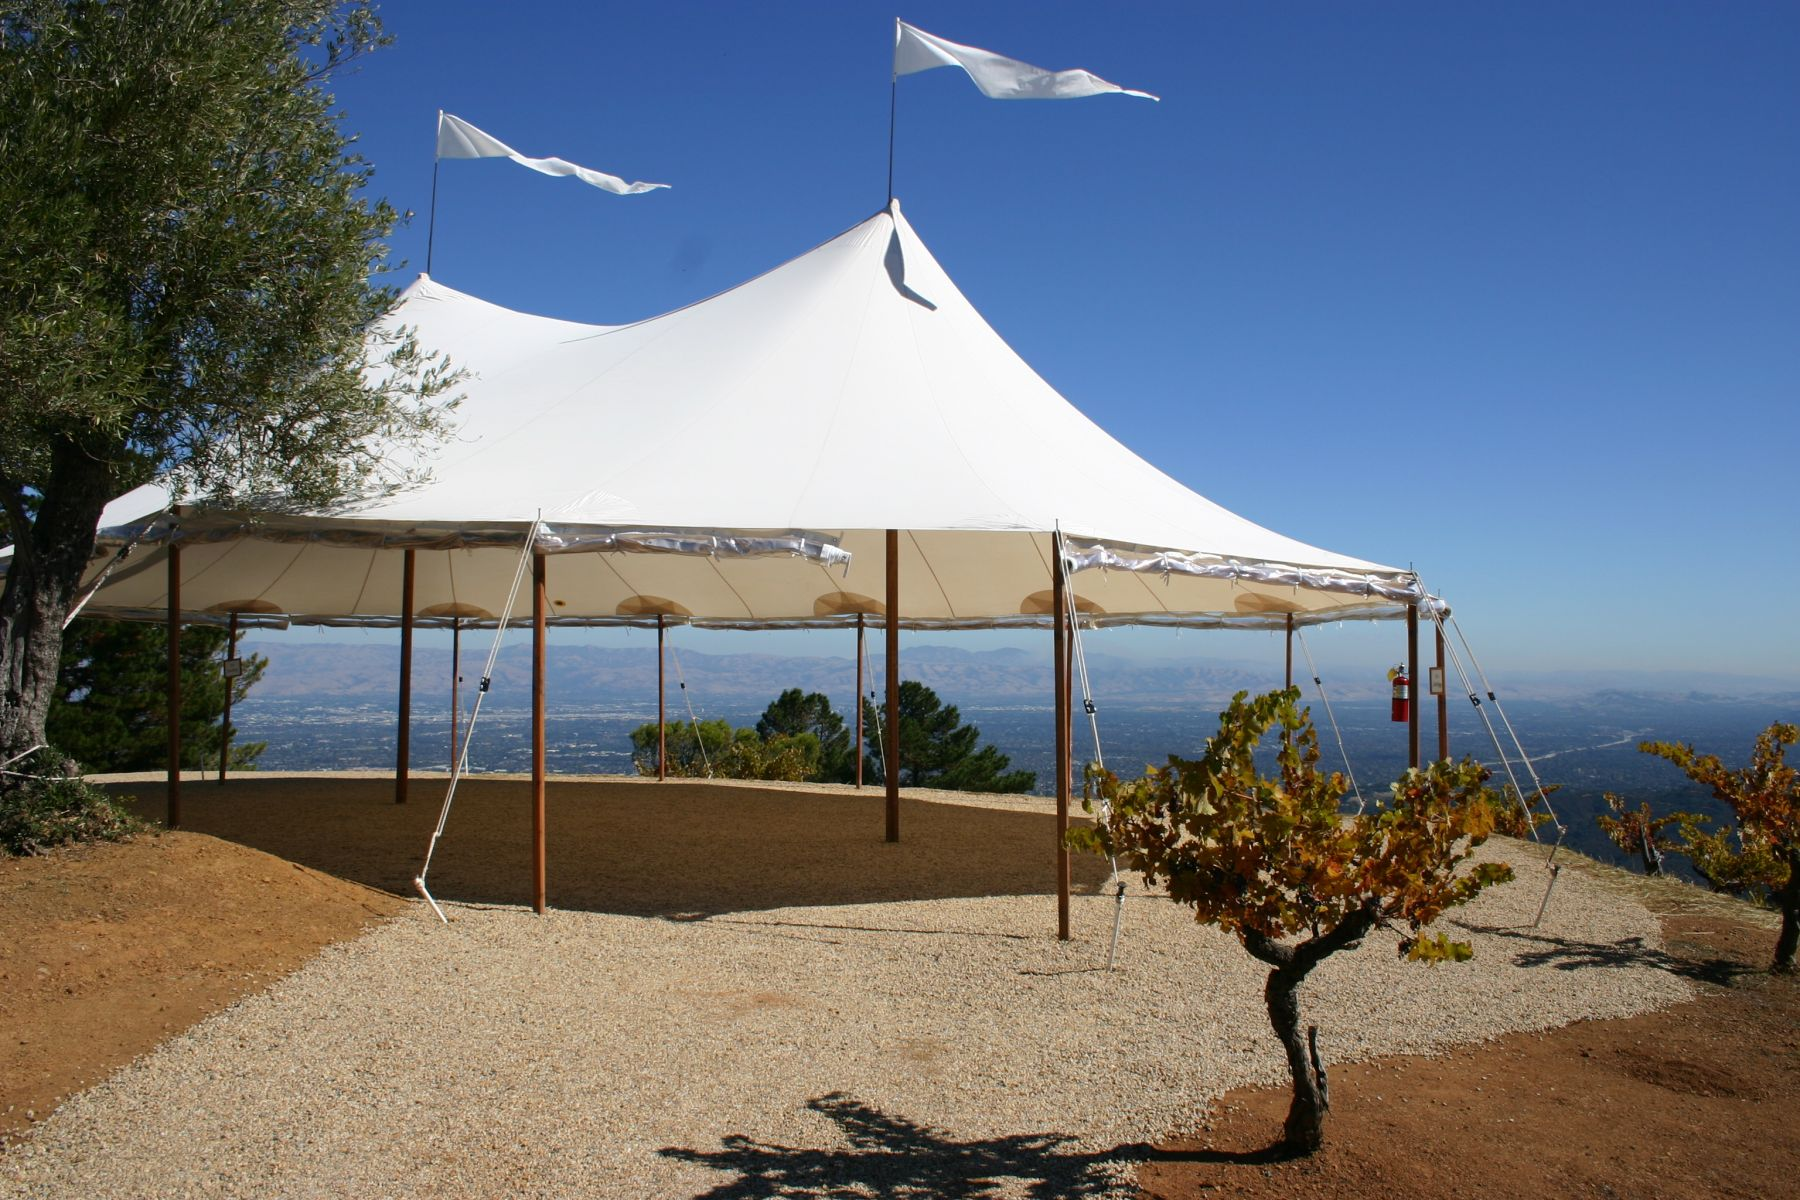 32 x 50 Sperry tent ridge winery cocktail canopy